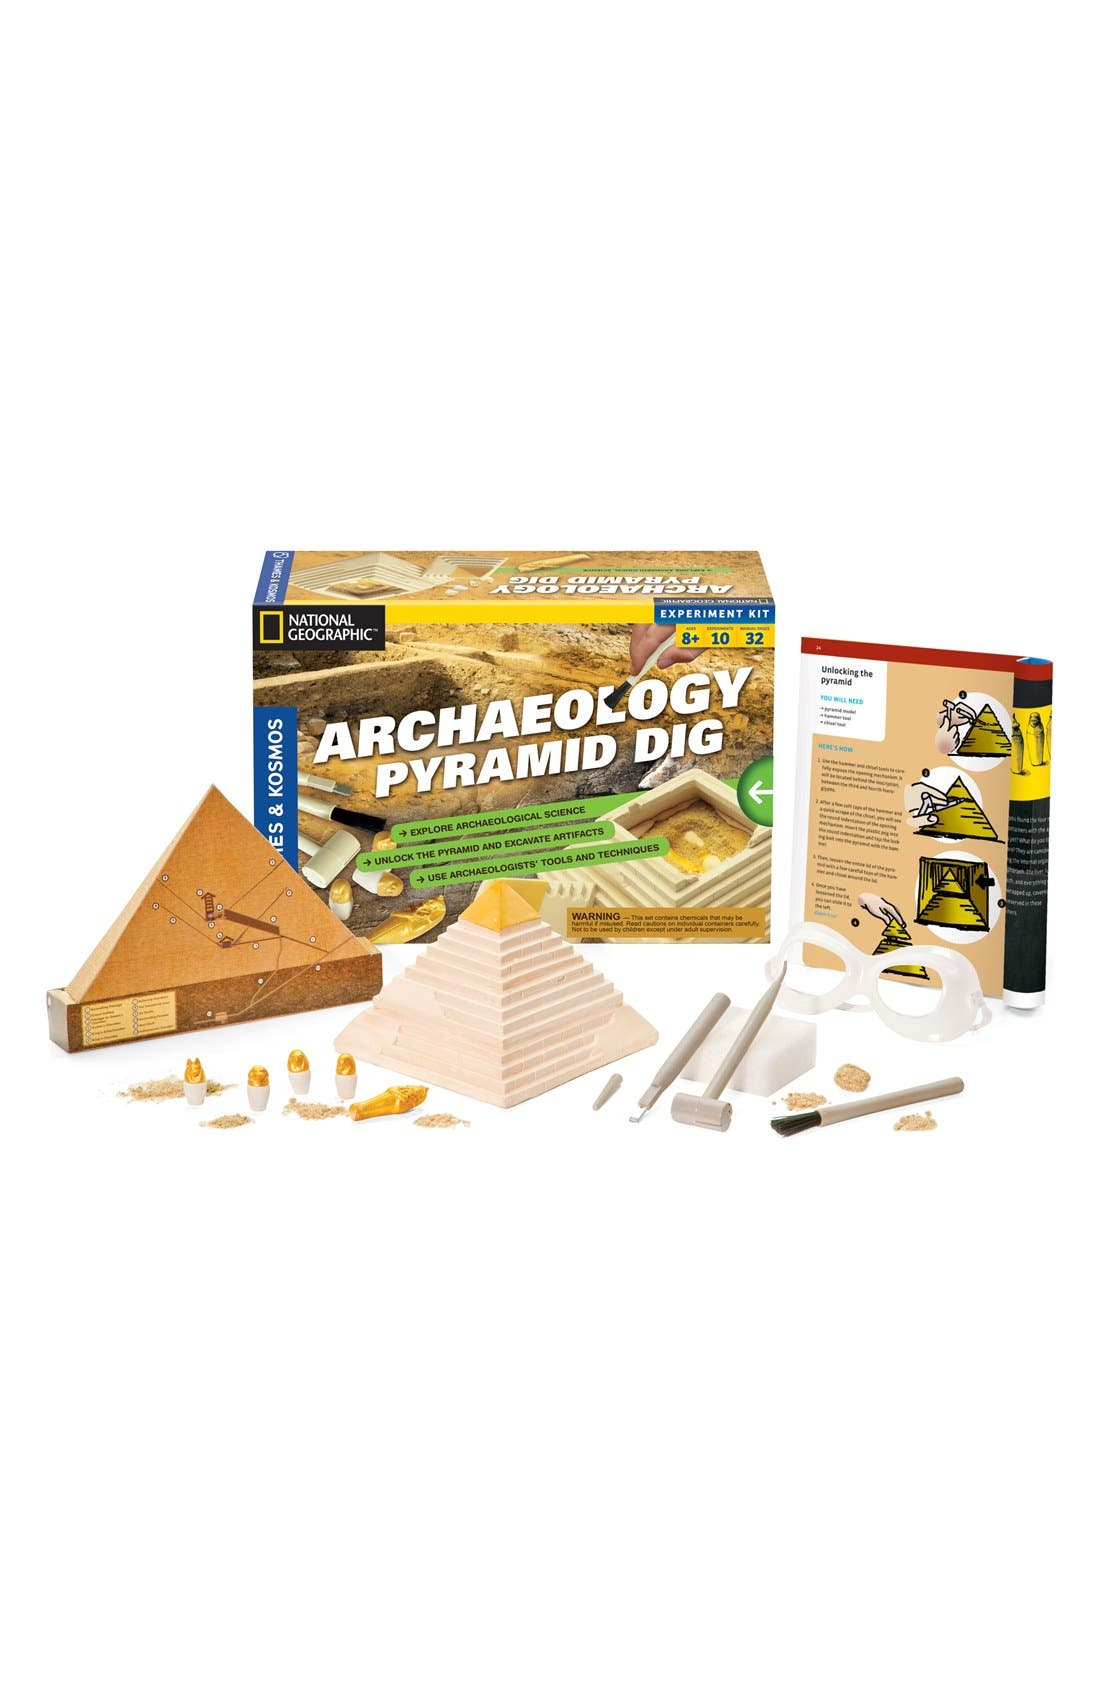 'Archaeology: Pyramid Dig 2.0' Play Kit,                         Main,                         color, None